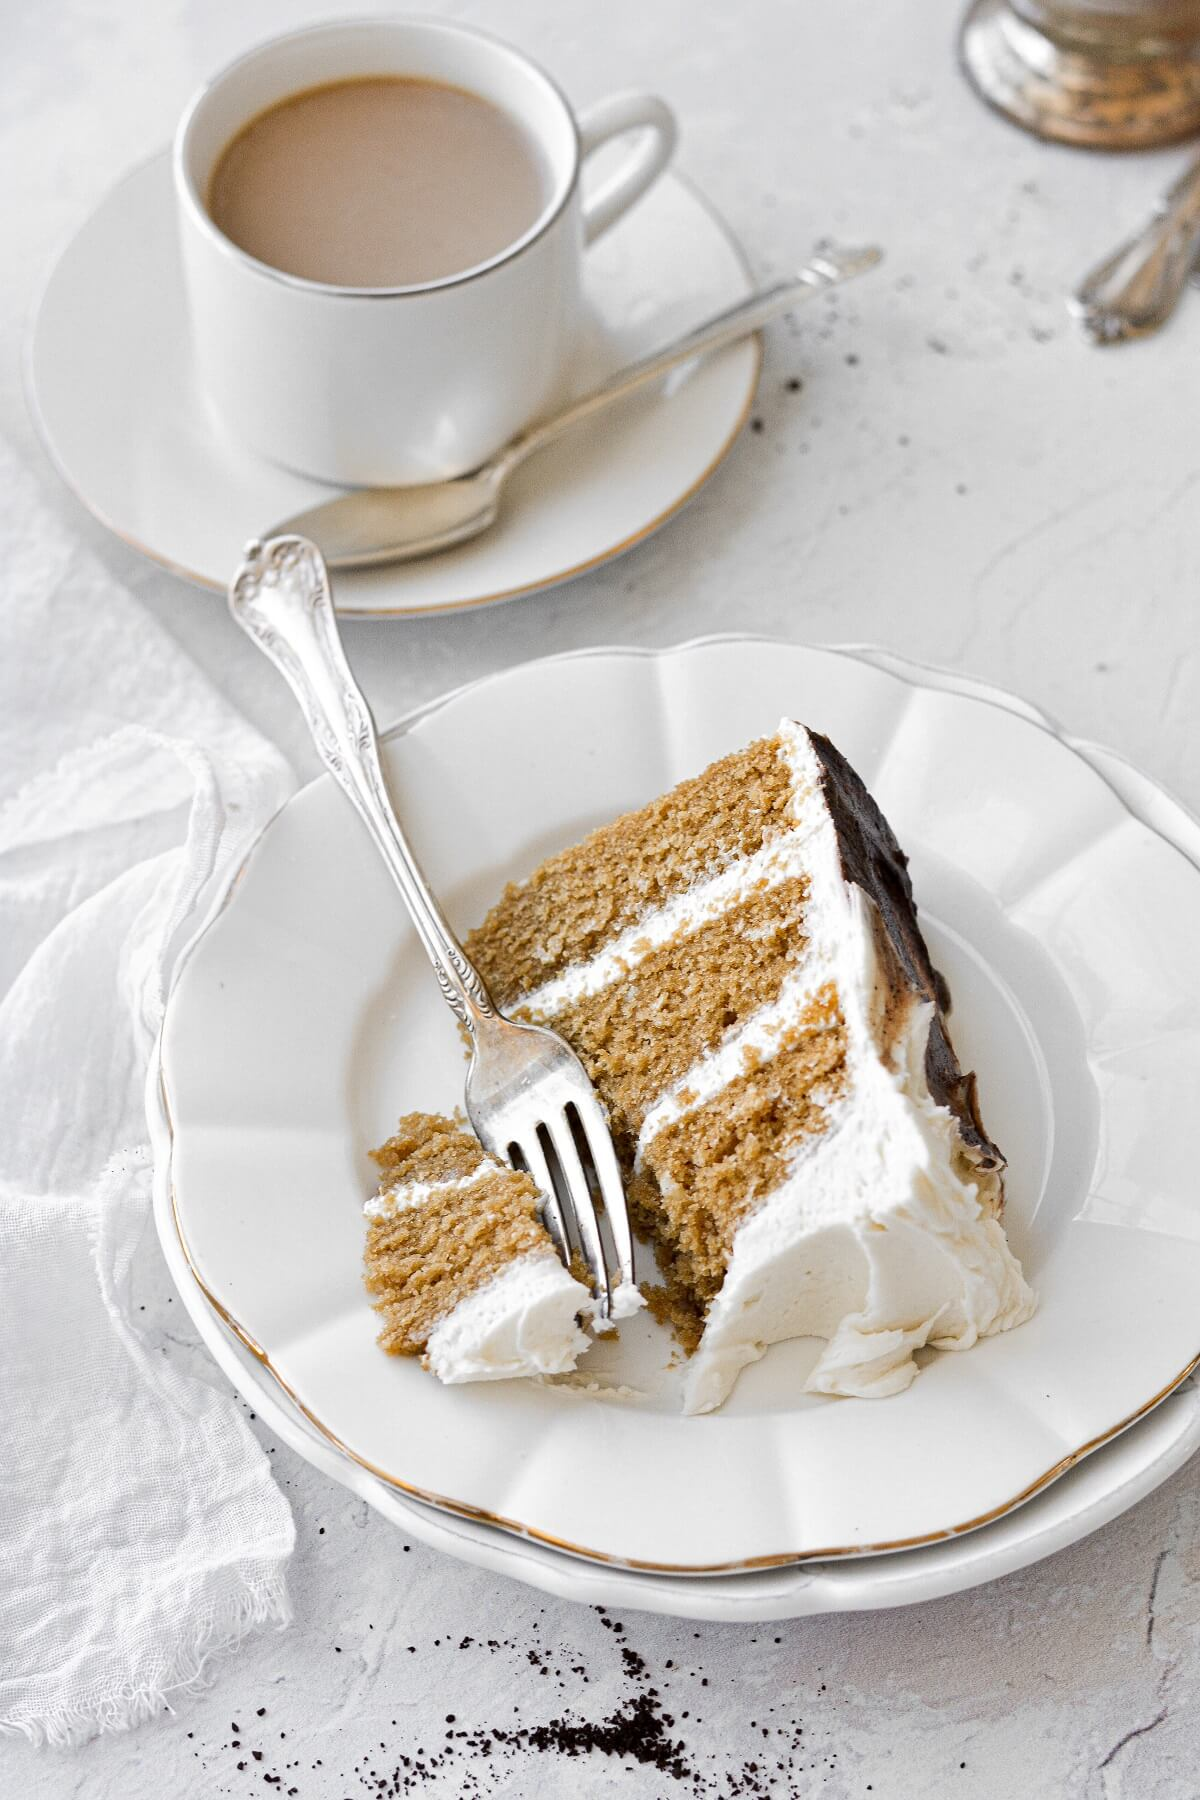 A slice of vanilla latte cake with a bite cut, next to a cup of coffee.